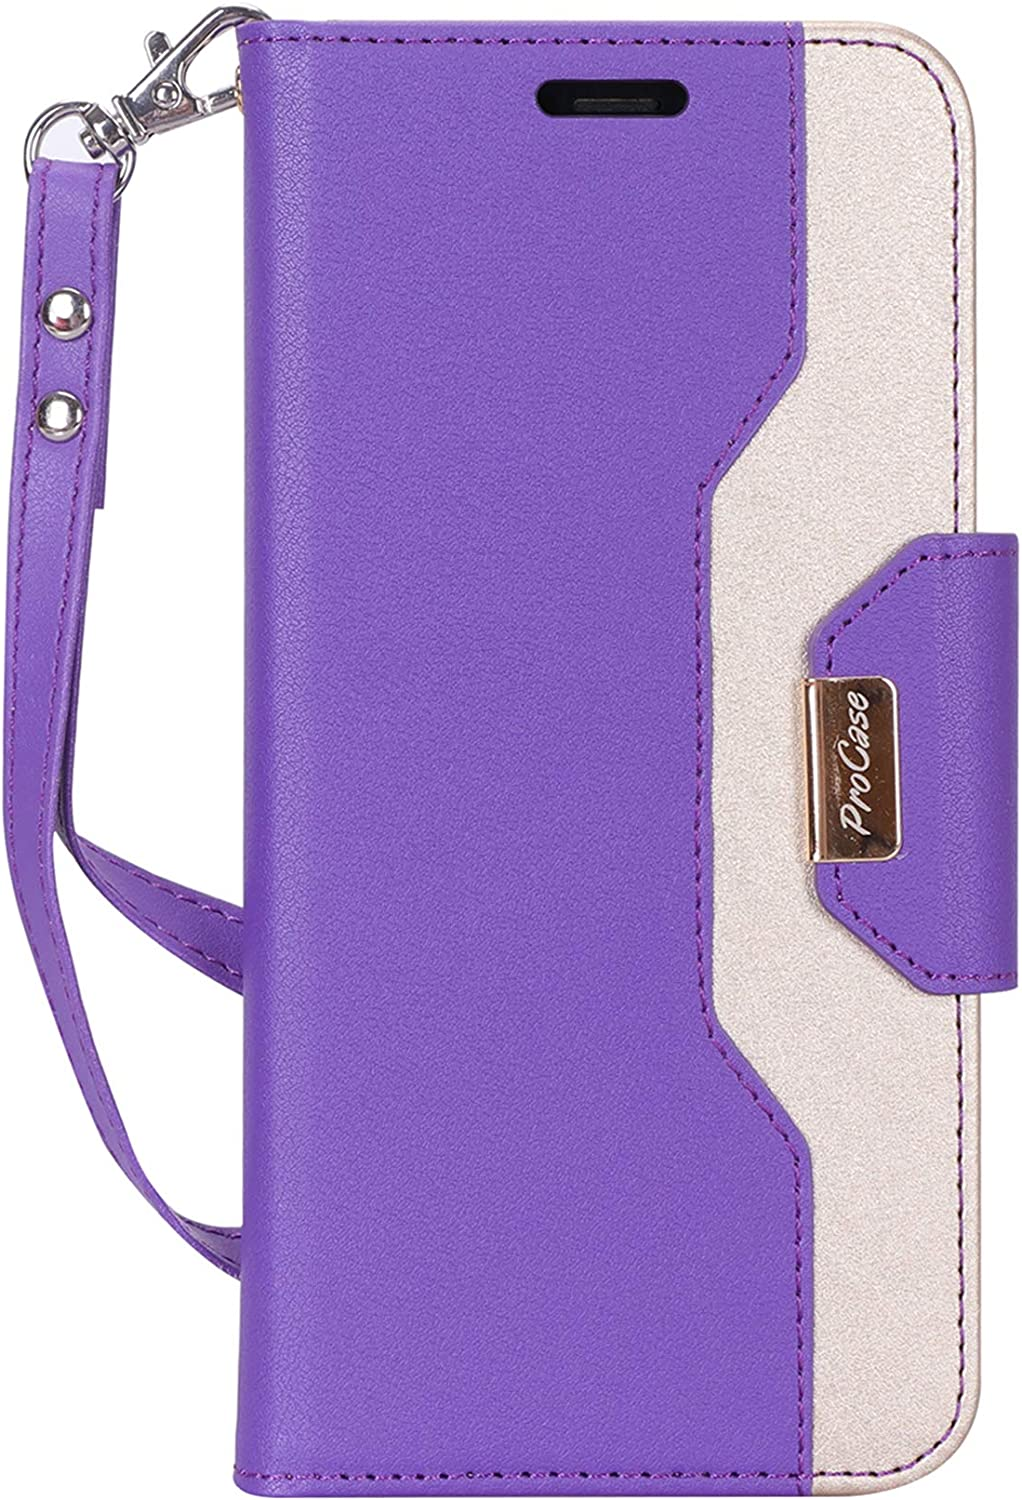 "ProCase Wallet Case for iPhone XR, Folio Flip Case with Kickstand Card Holders Mirror Wristlet, Folding Stand Protective Cover for Apple iPhone XR 6.1"" 2018 Release -Purple"